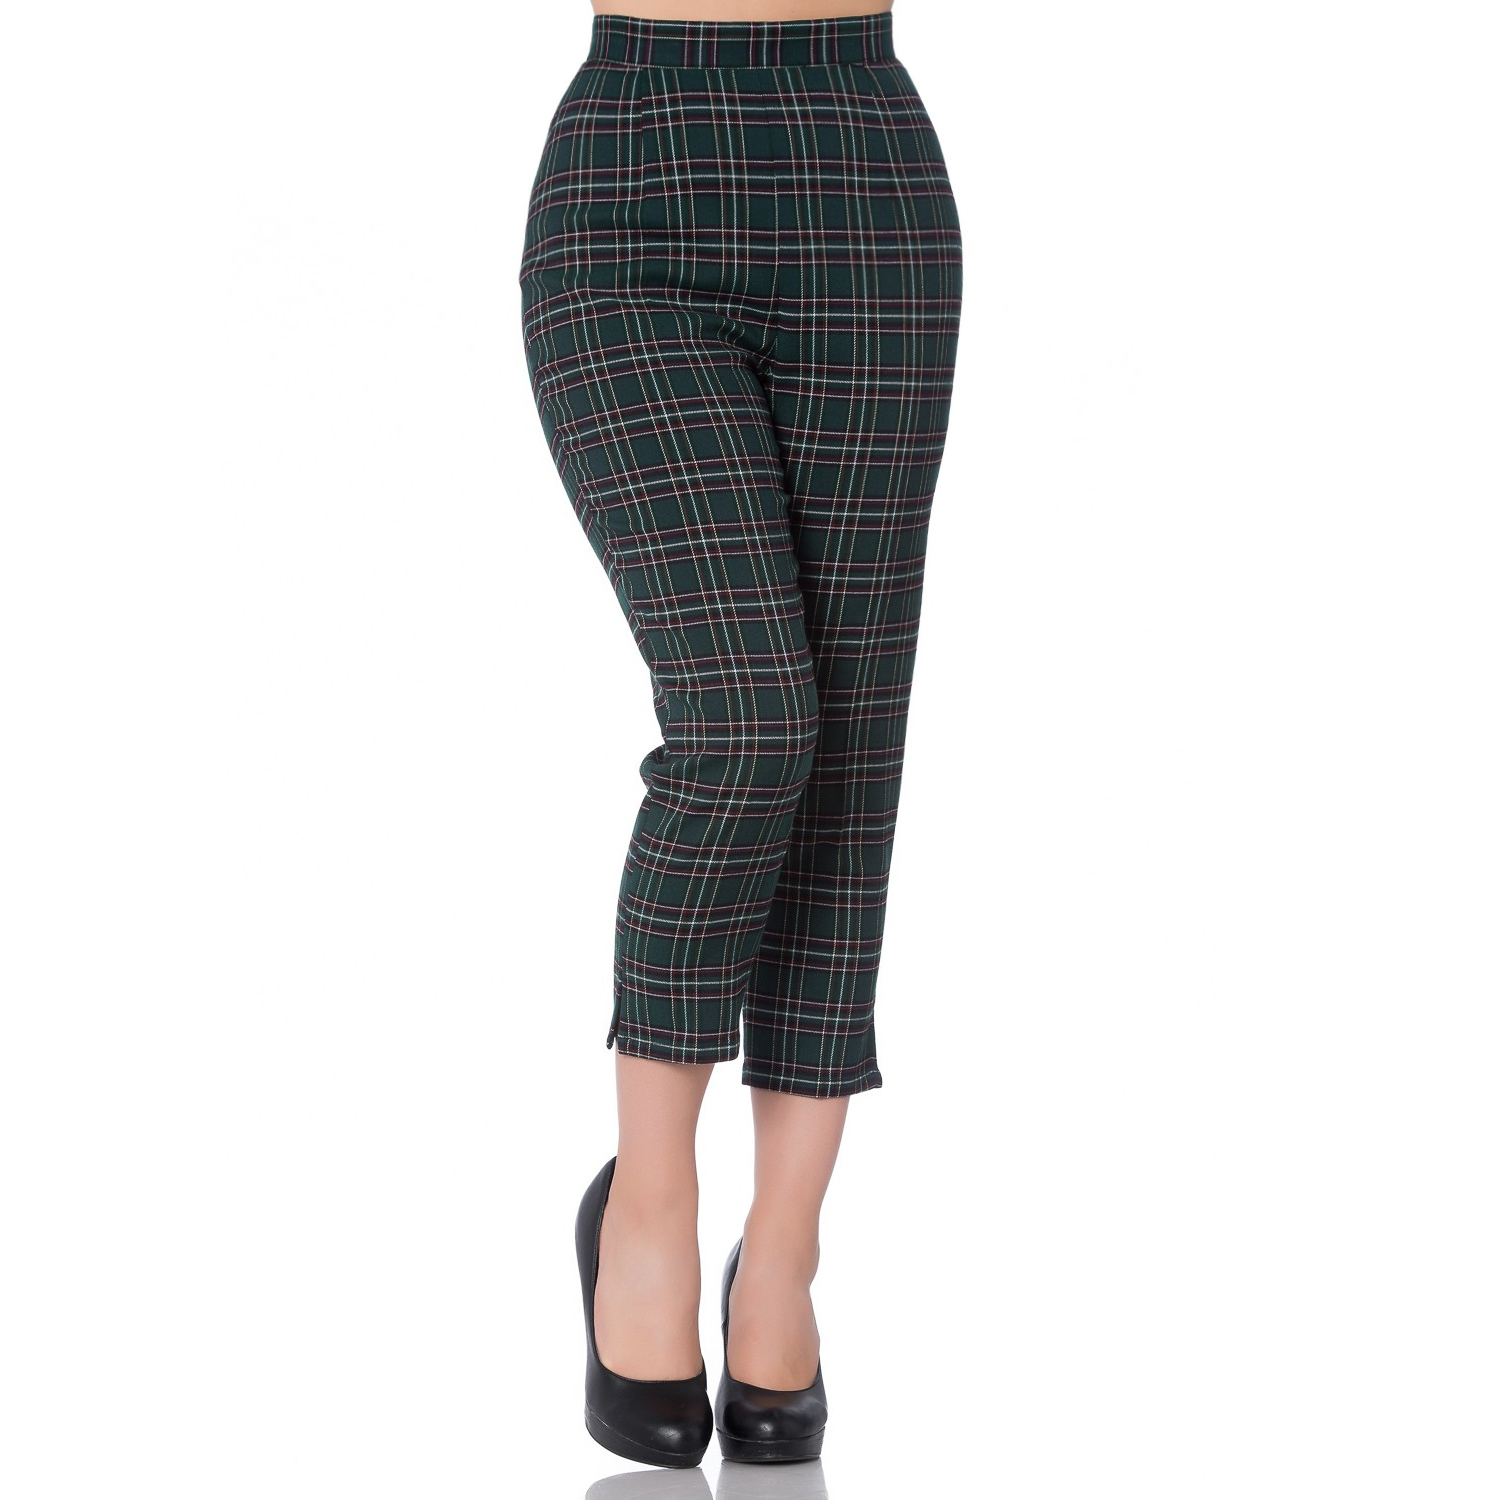 bb1475d87a679 Hell Bunny Pebbles Trousers